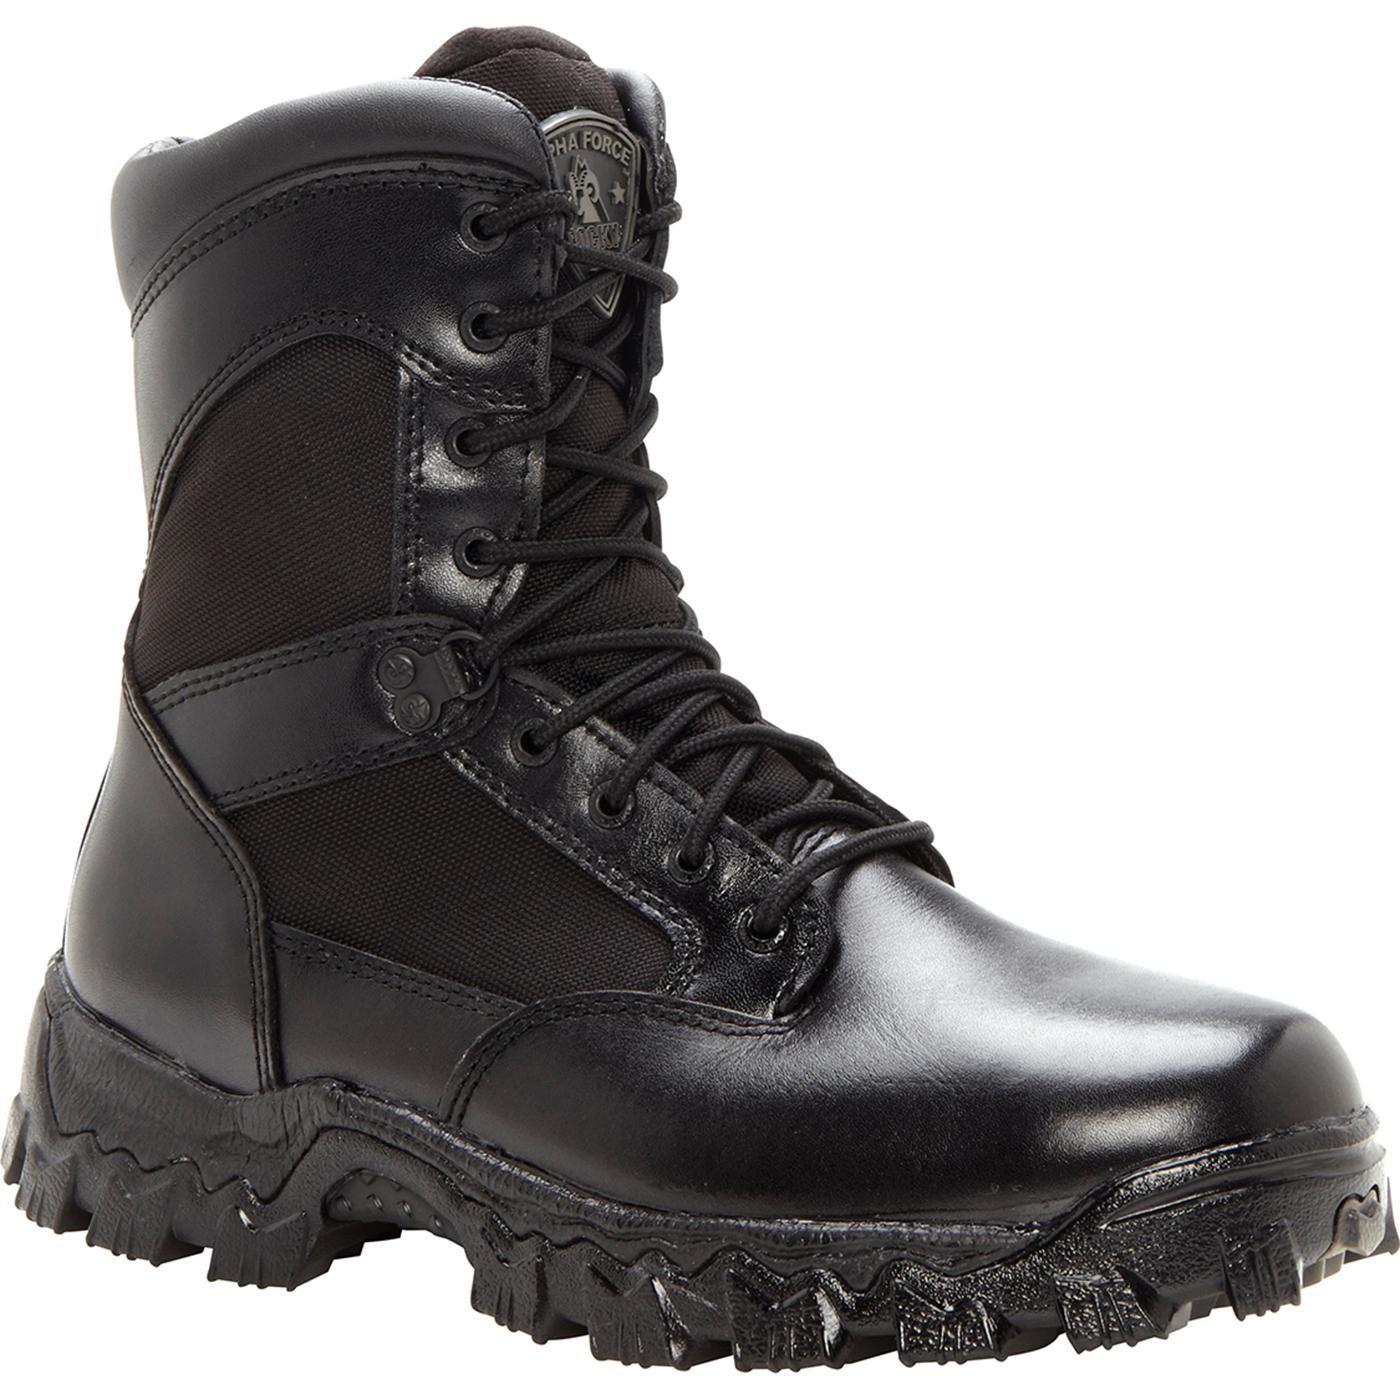 Rocky Alphaforce Composite Toe Waterproof Duty Boot 6169